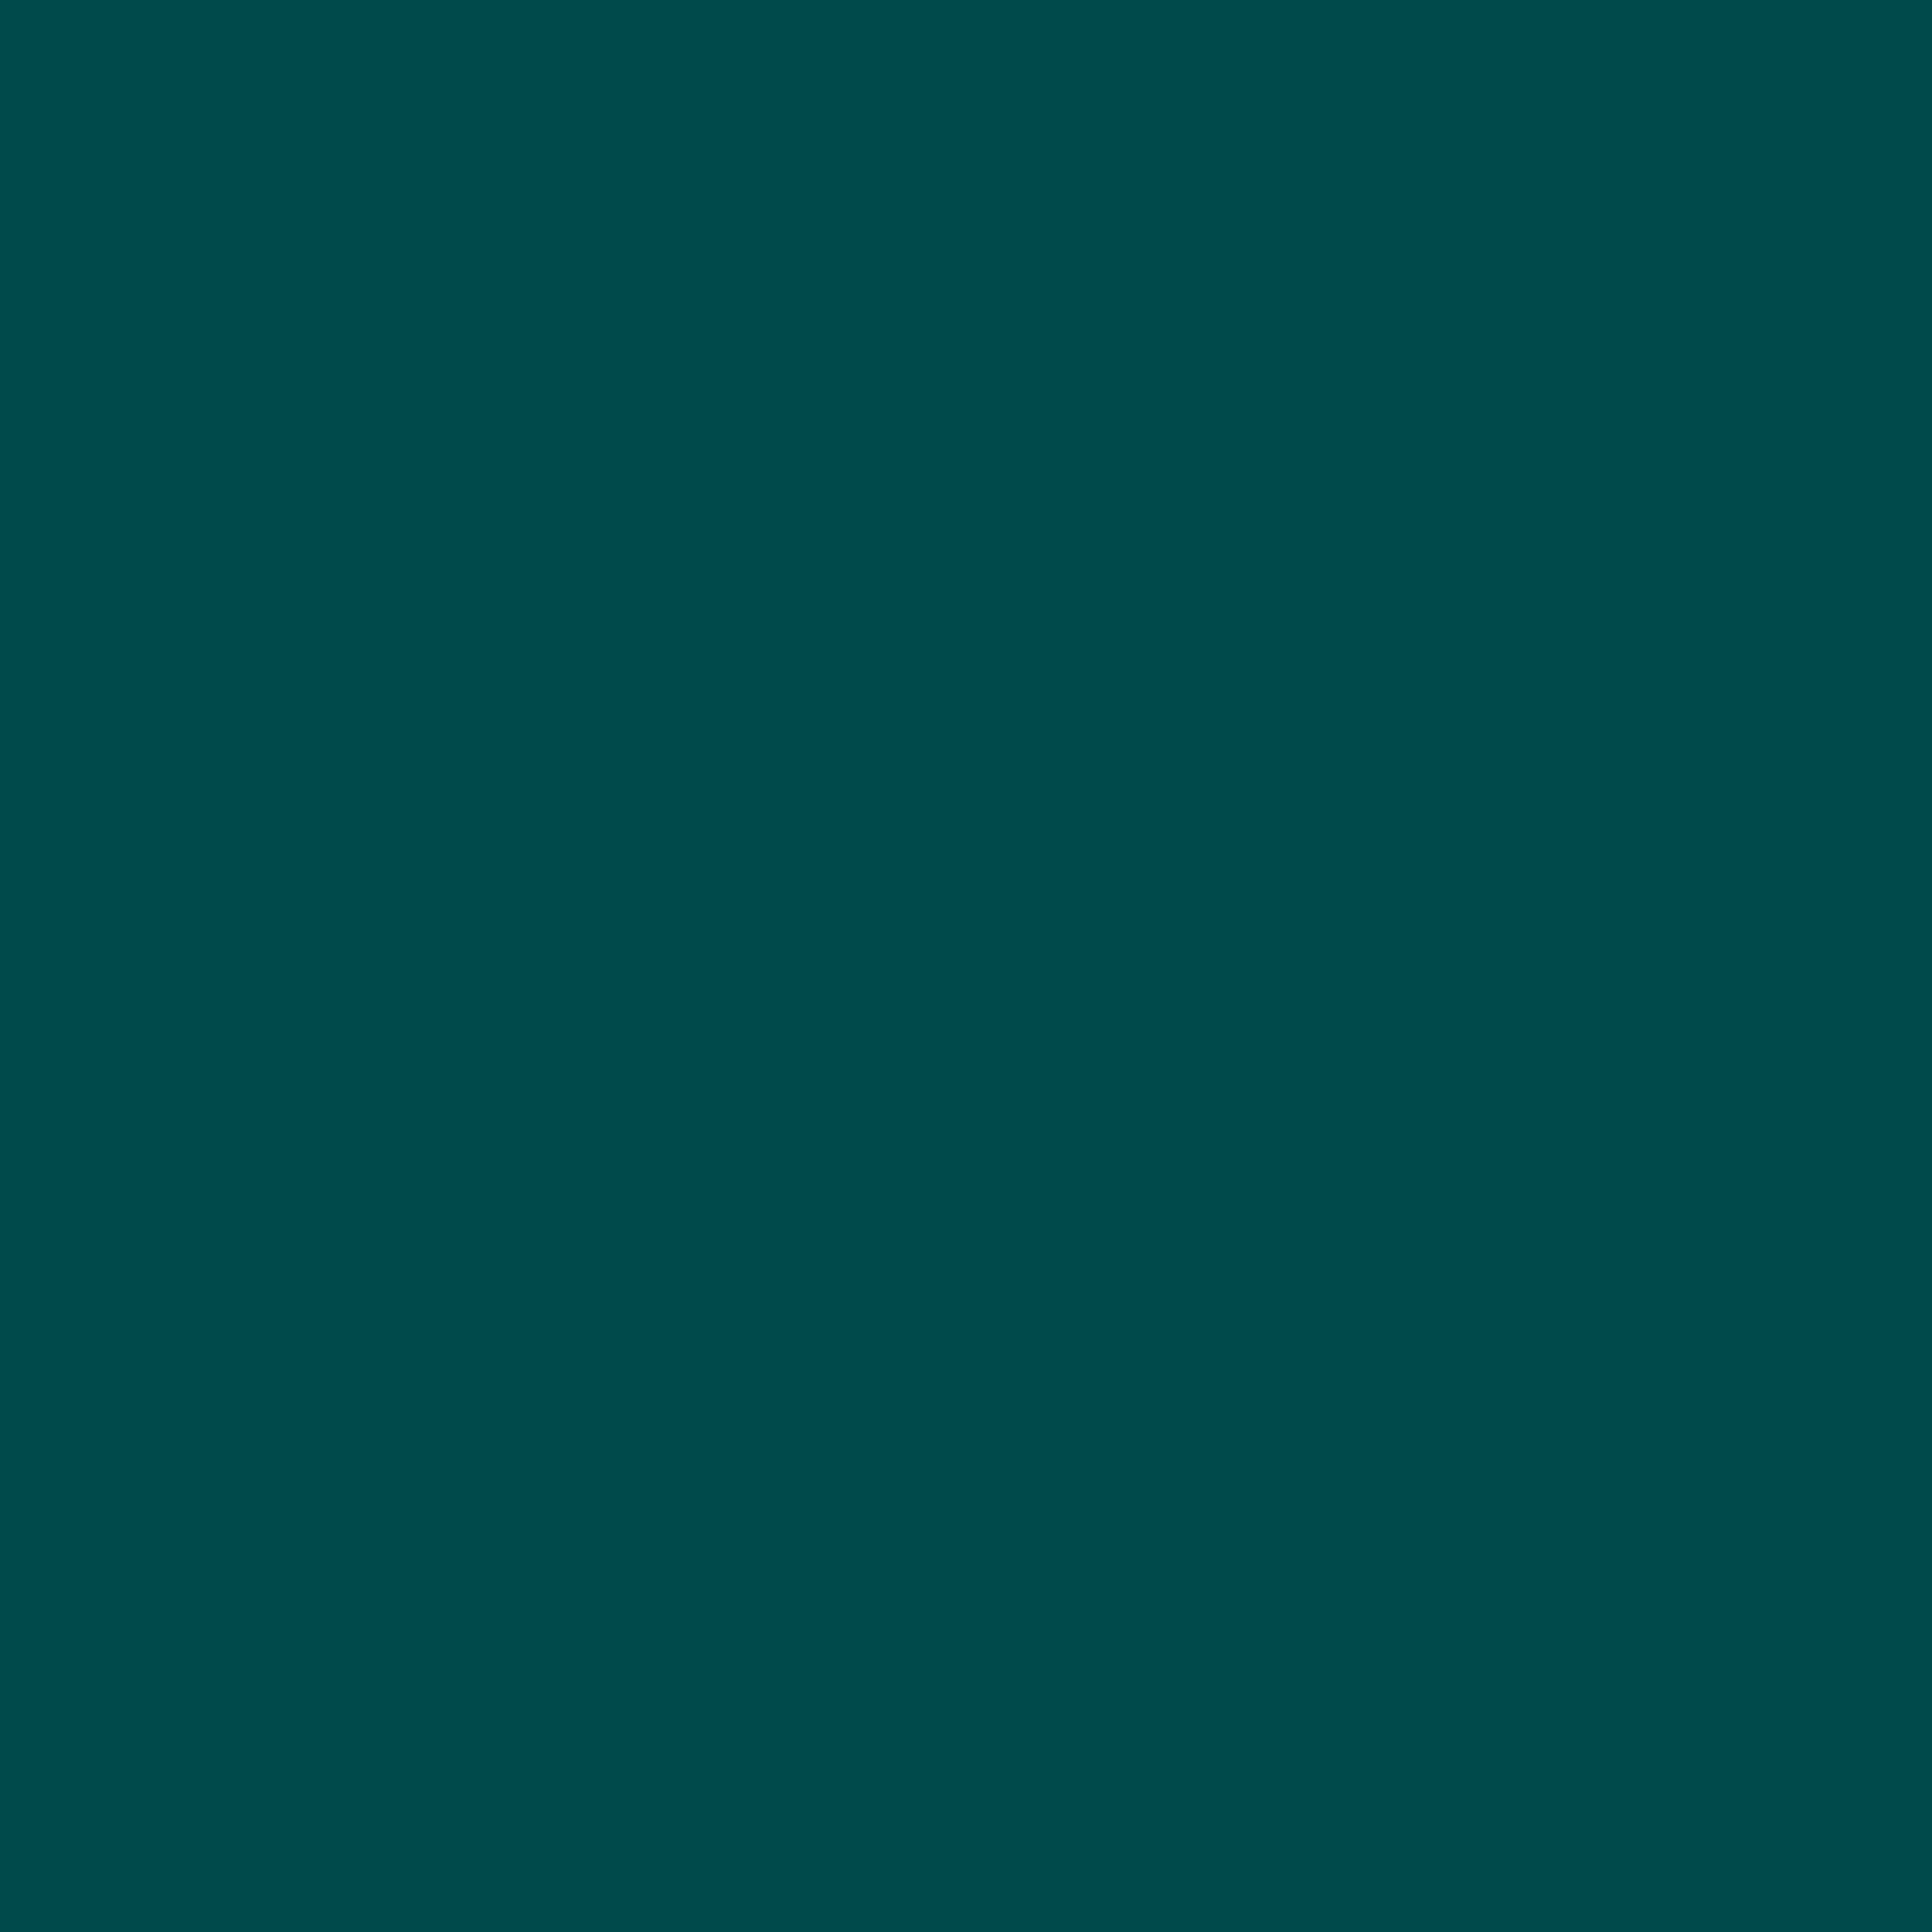 2732x2732 Deep Jungle Green Solid Color Background